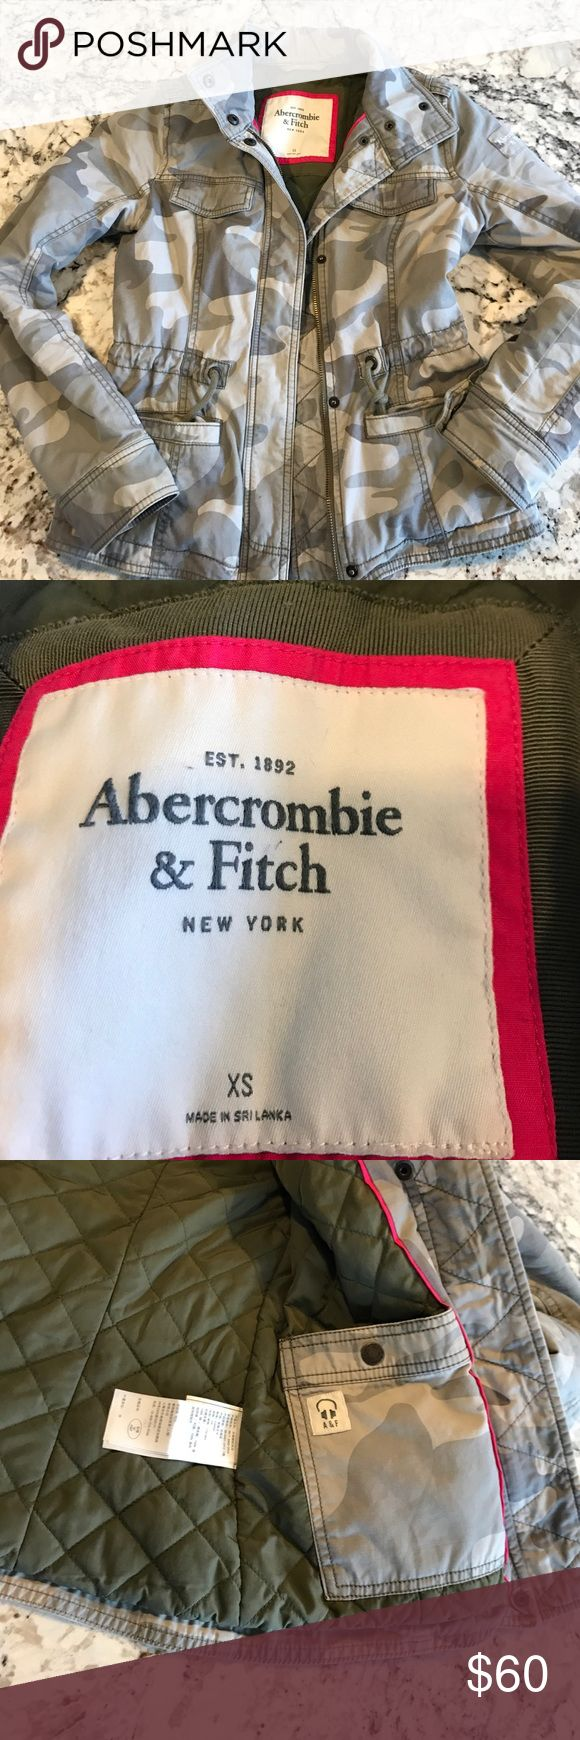 Abercrombie and fitch jacket coat xs Amy camo Quilted lining Abercrombie and fitch coat. Army green camouflage. Soft, has paint on left bottom sleeve but blends in. Look cute with skinny jeans and a t shirt. Abercrombie & Fitch Jackets & Coats Utility Jackets